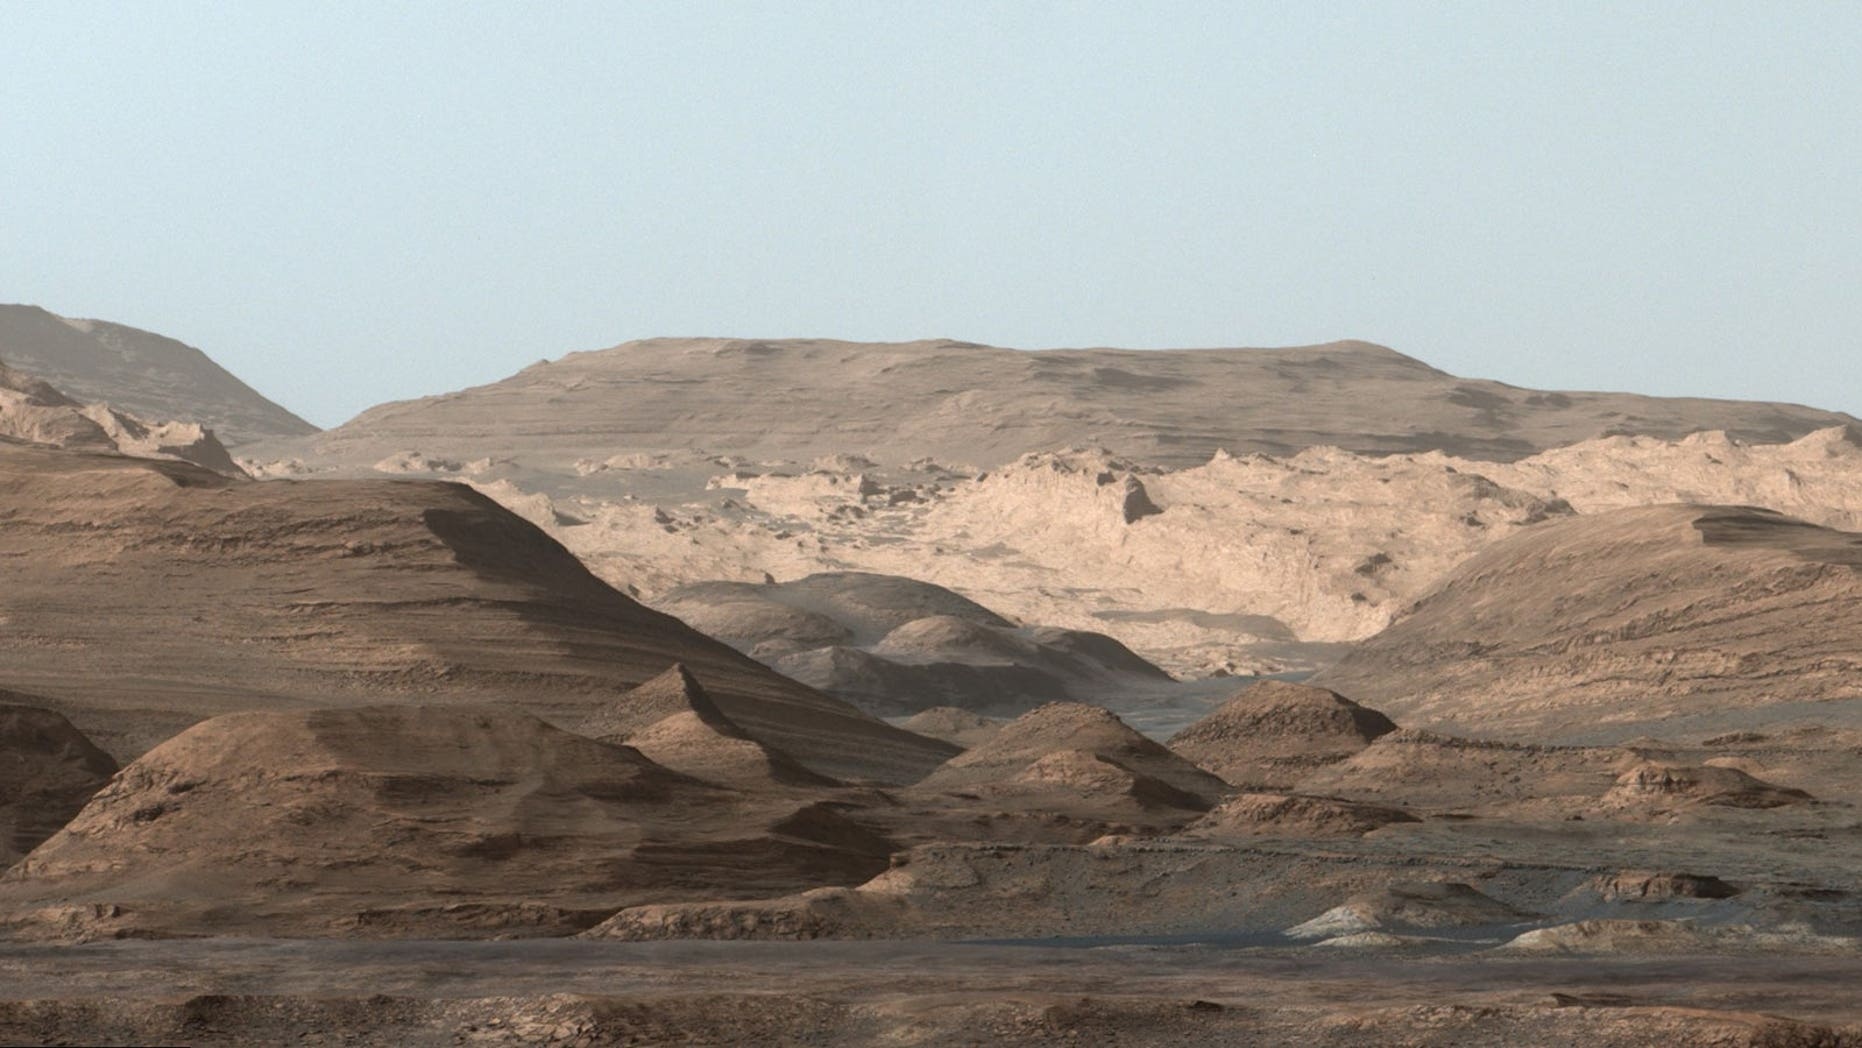 NASA's Mars rover Curiosity captured this composite image, which looks toward the higher regions of Mount Sharp, on Sept. 9, 2015.